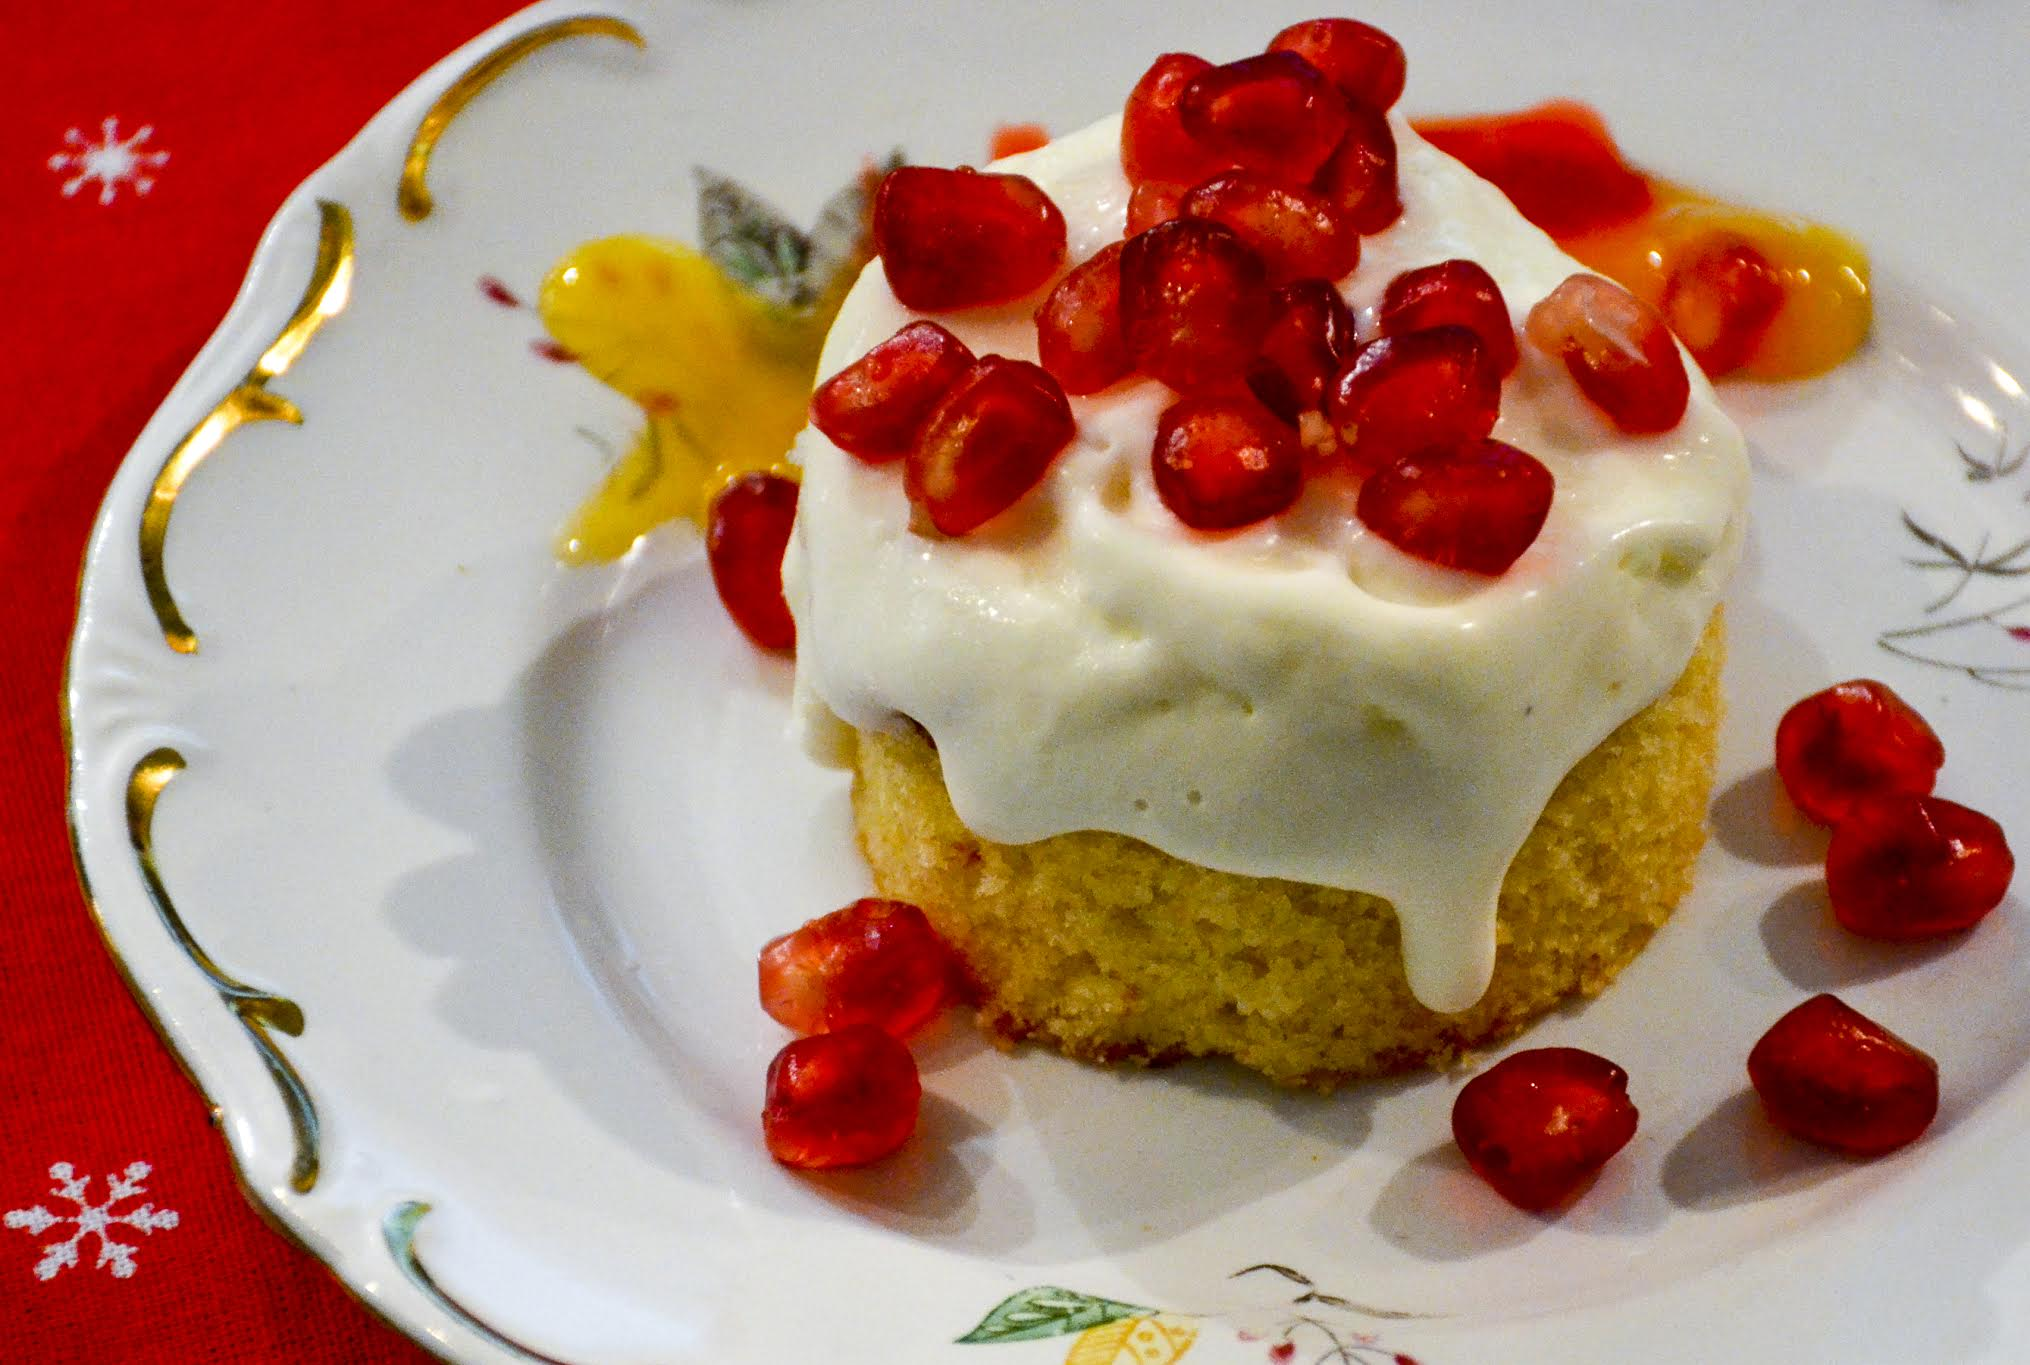 Pomegranate-lemon-and-feta-cream-dessert